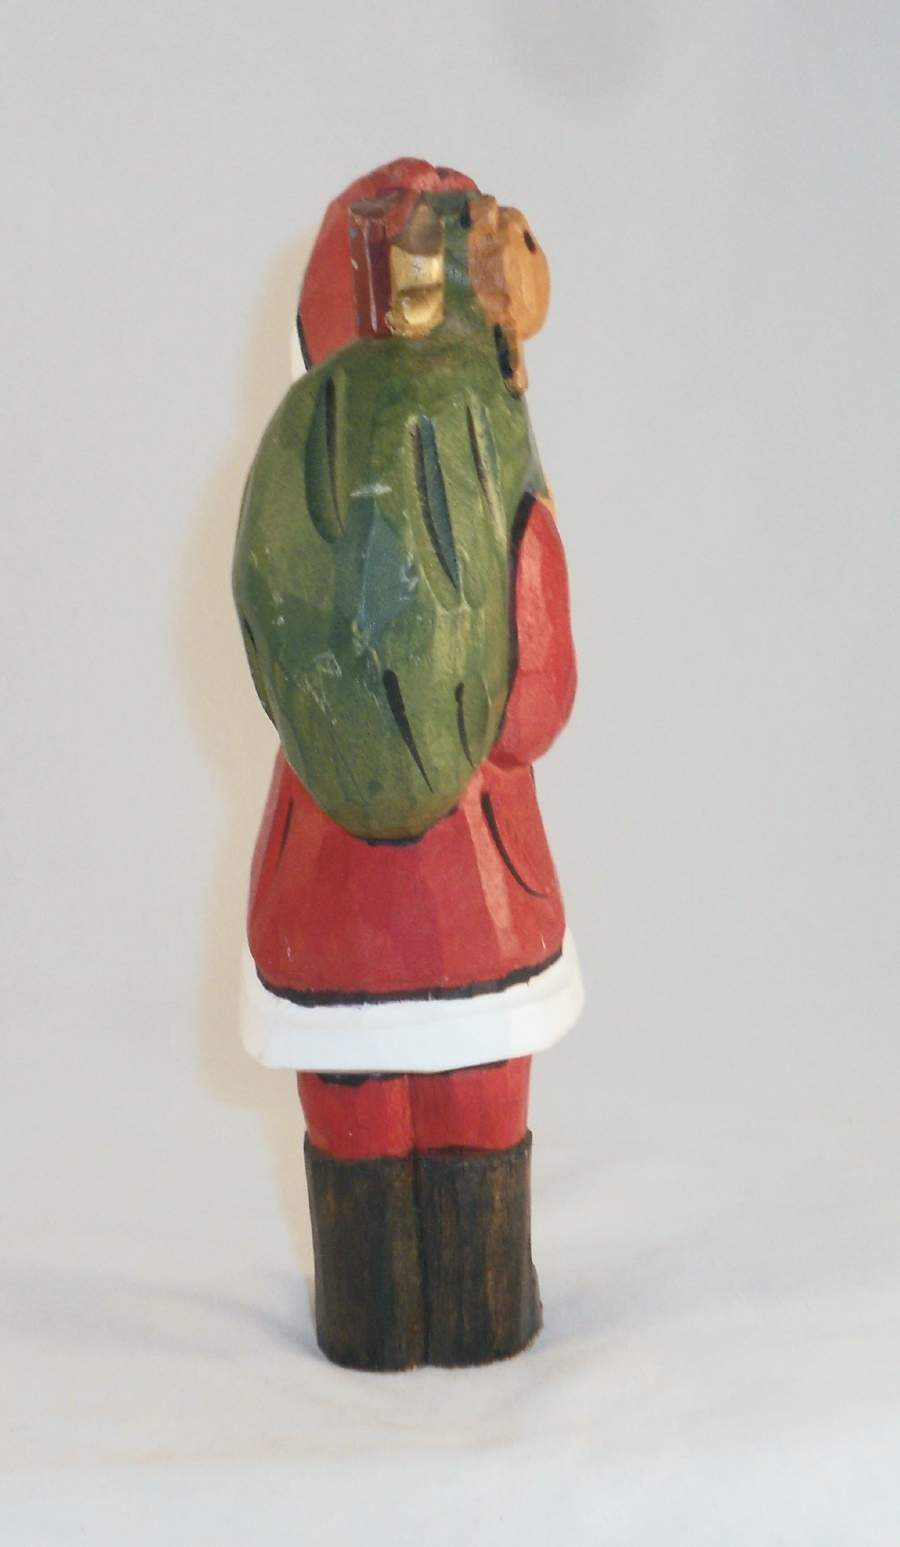 Hand Carved & Painted Wood Folk Art Santa Figure Earl Houck Gordonville, PA